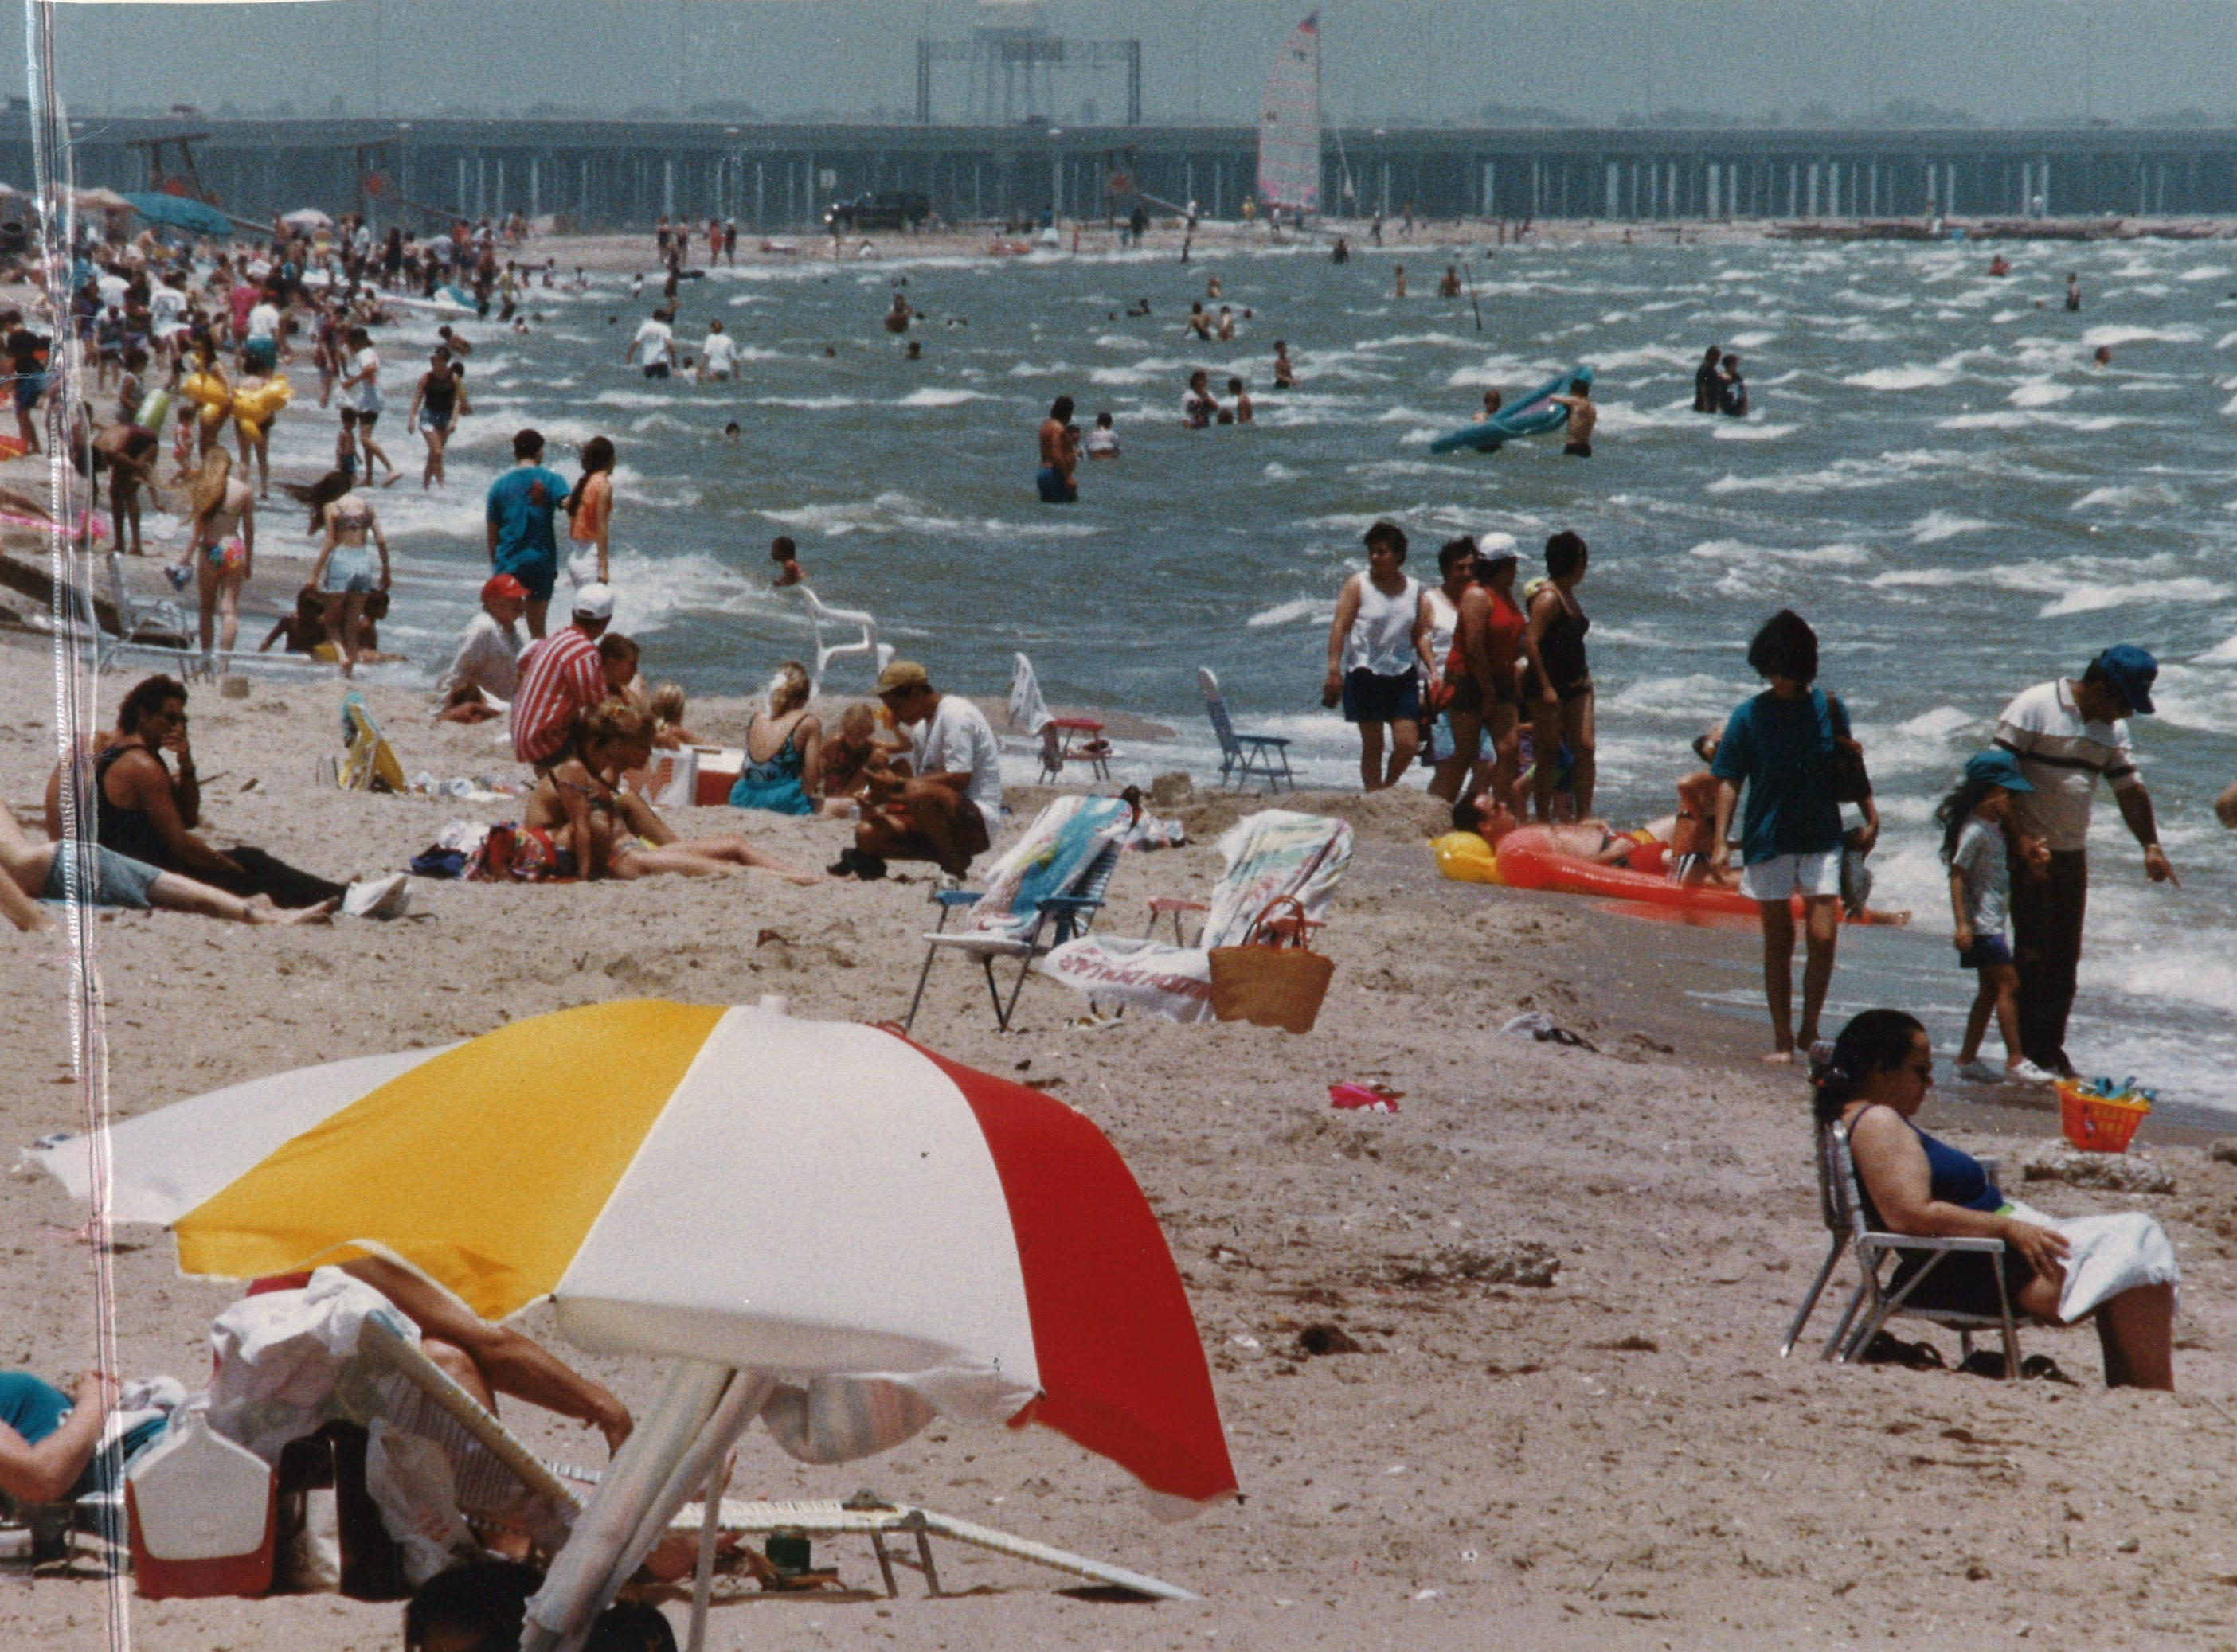 Warm weather dre large scrowds of people to Corpus Christi's North Beach on July 16, 1994. This is the view looking north toward the Nueces Bay Causeway.